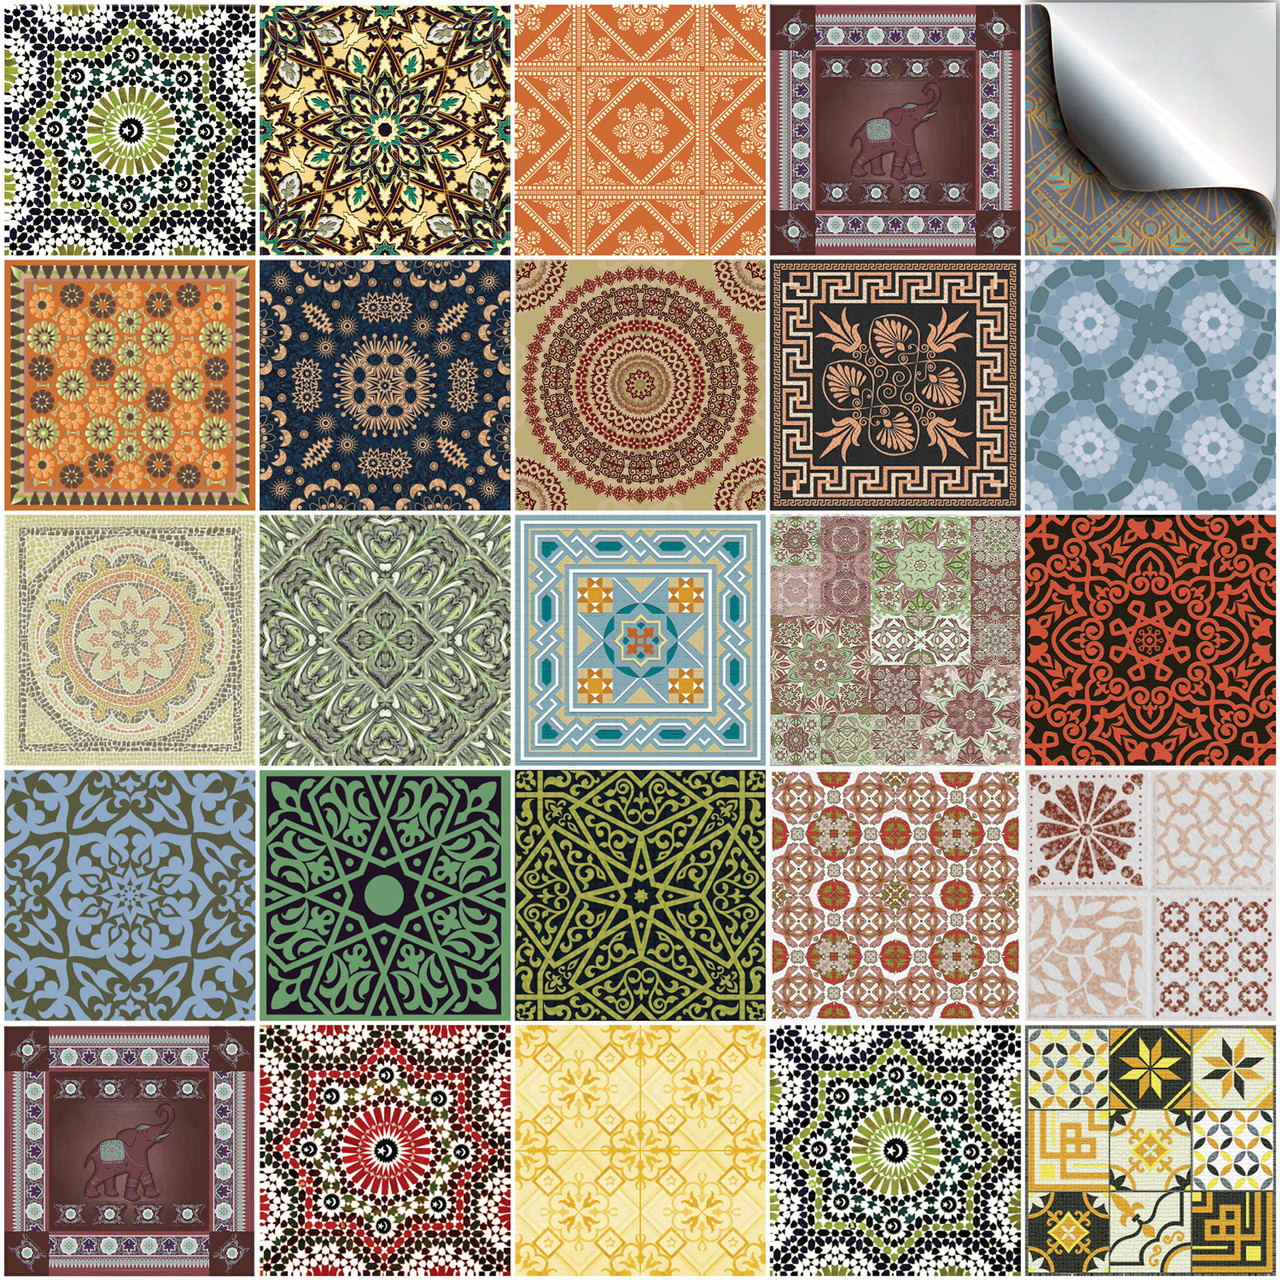 24 victorian tile transfers 6x6 4x4 inch for bathroom and kitchen victorian portuguese 10x10 15x15cm tile stickers